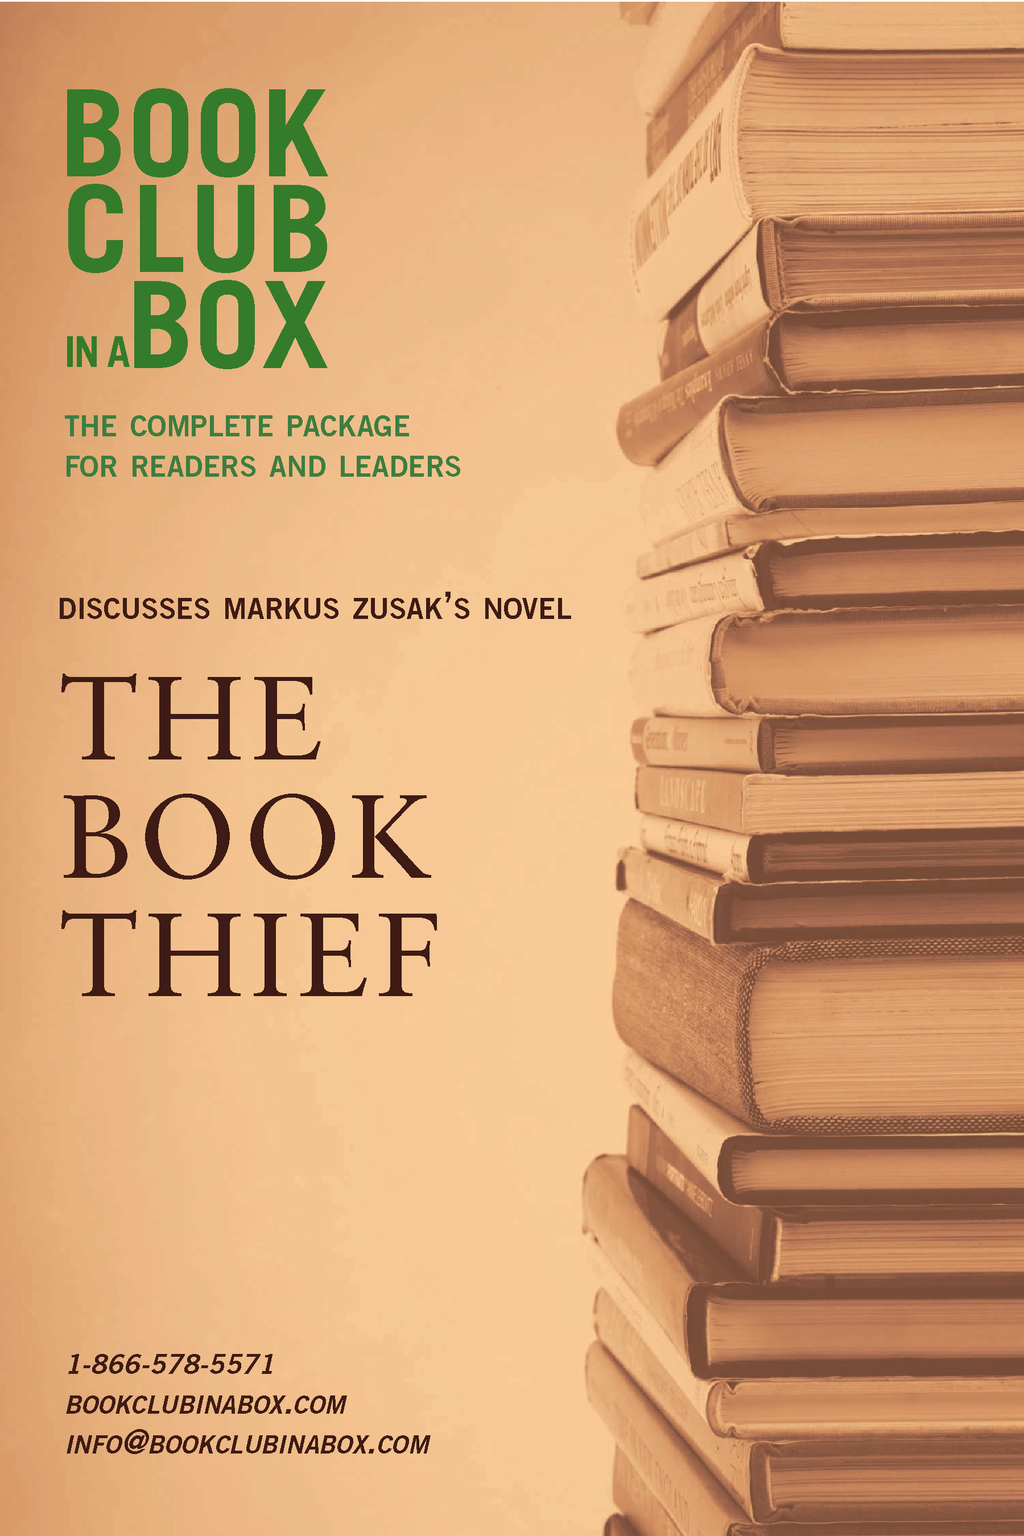 Bookclub-in-a-Box Discusses The Book Thief, by Markus Zusak: The Complete Package for Readers and Leaders By: Adina Herbert,Marilyn Herbert